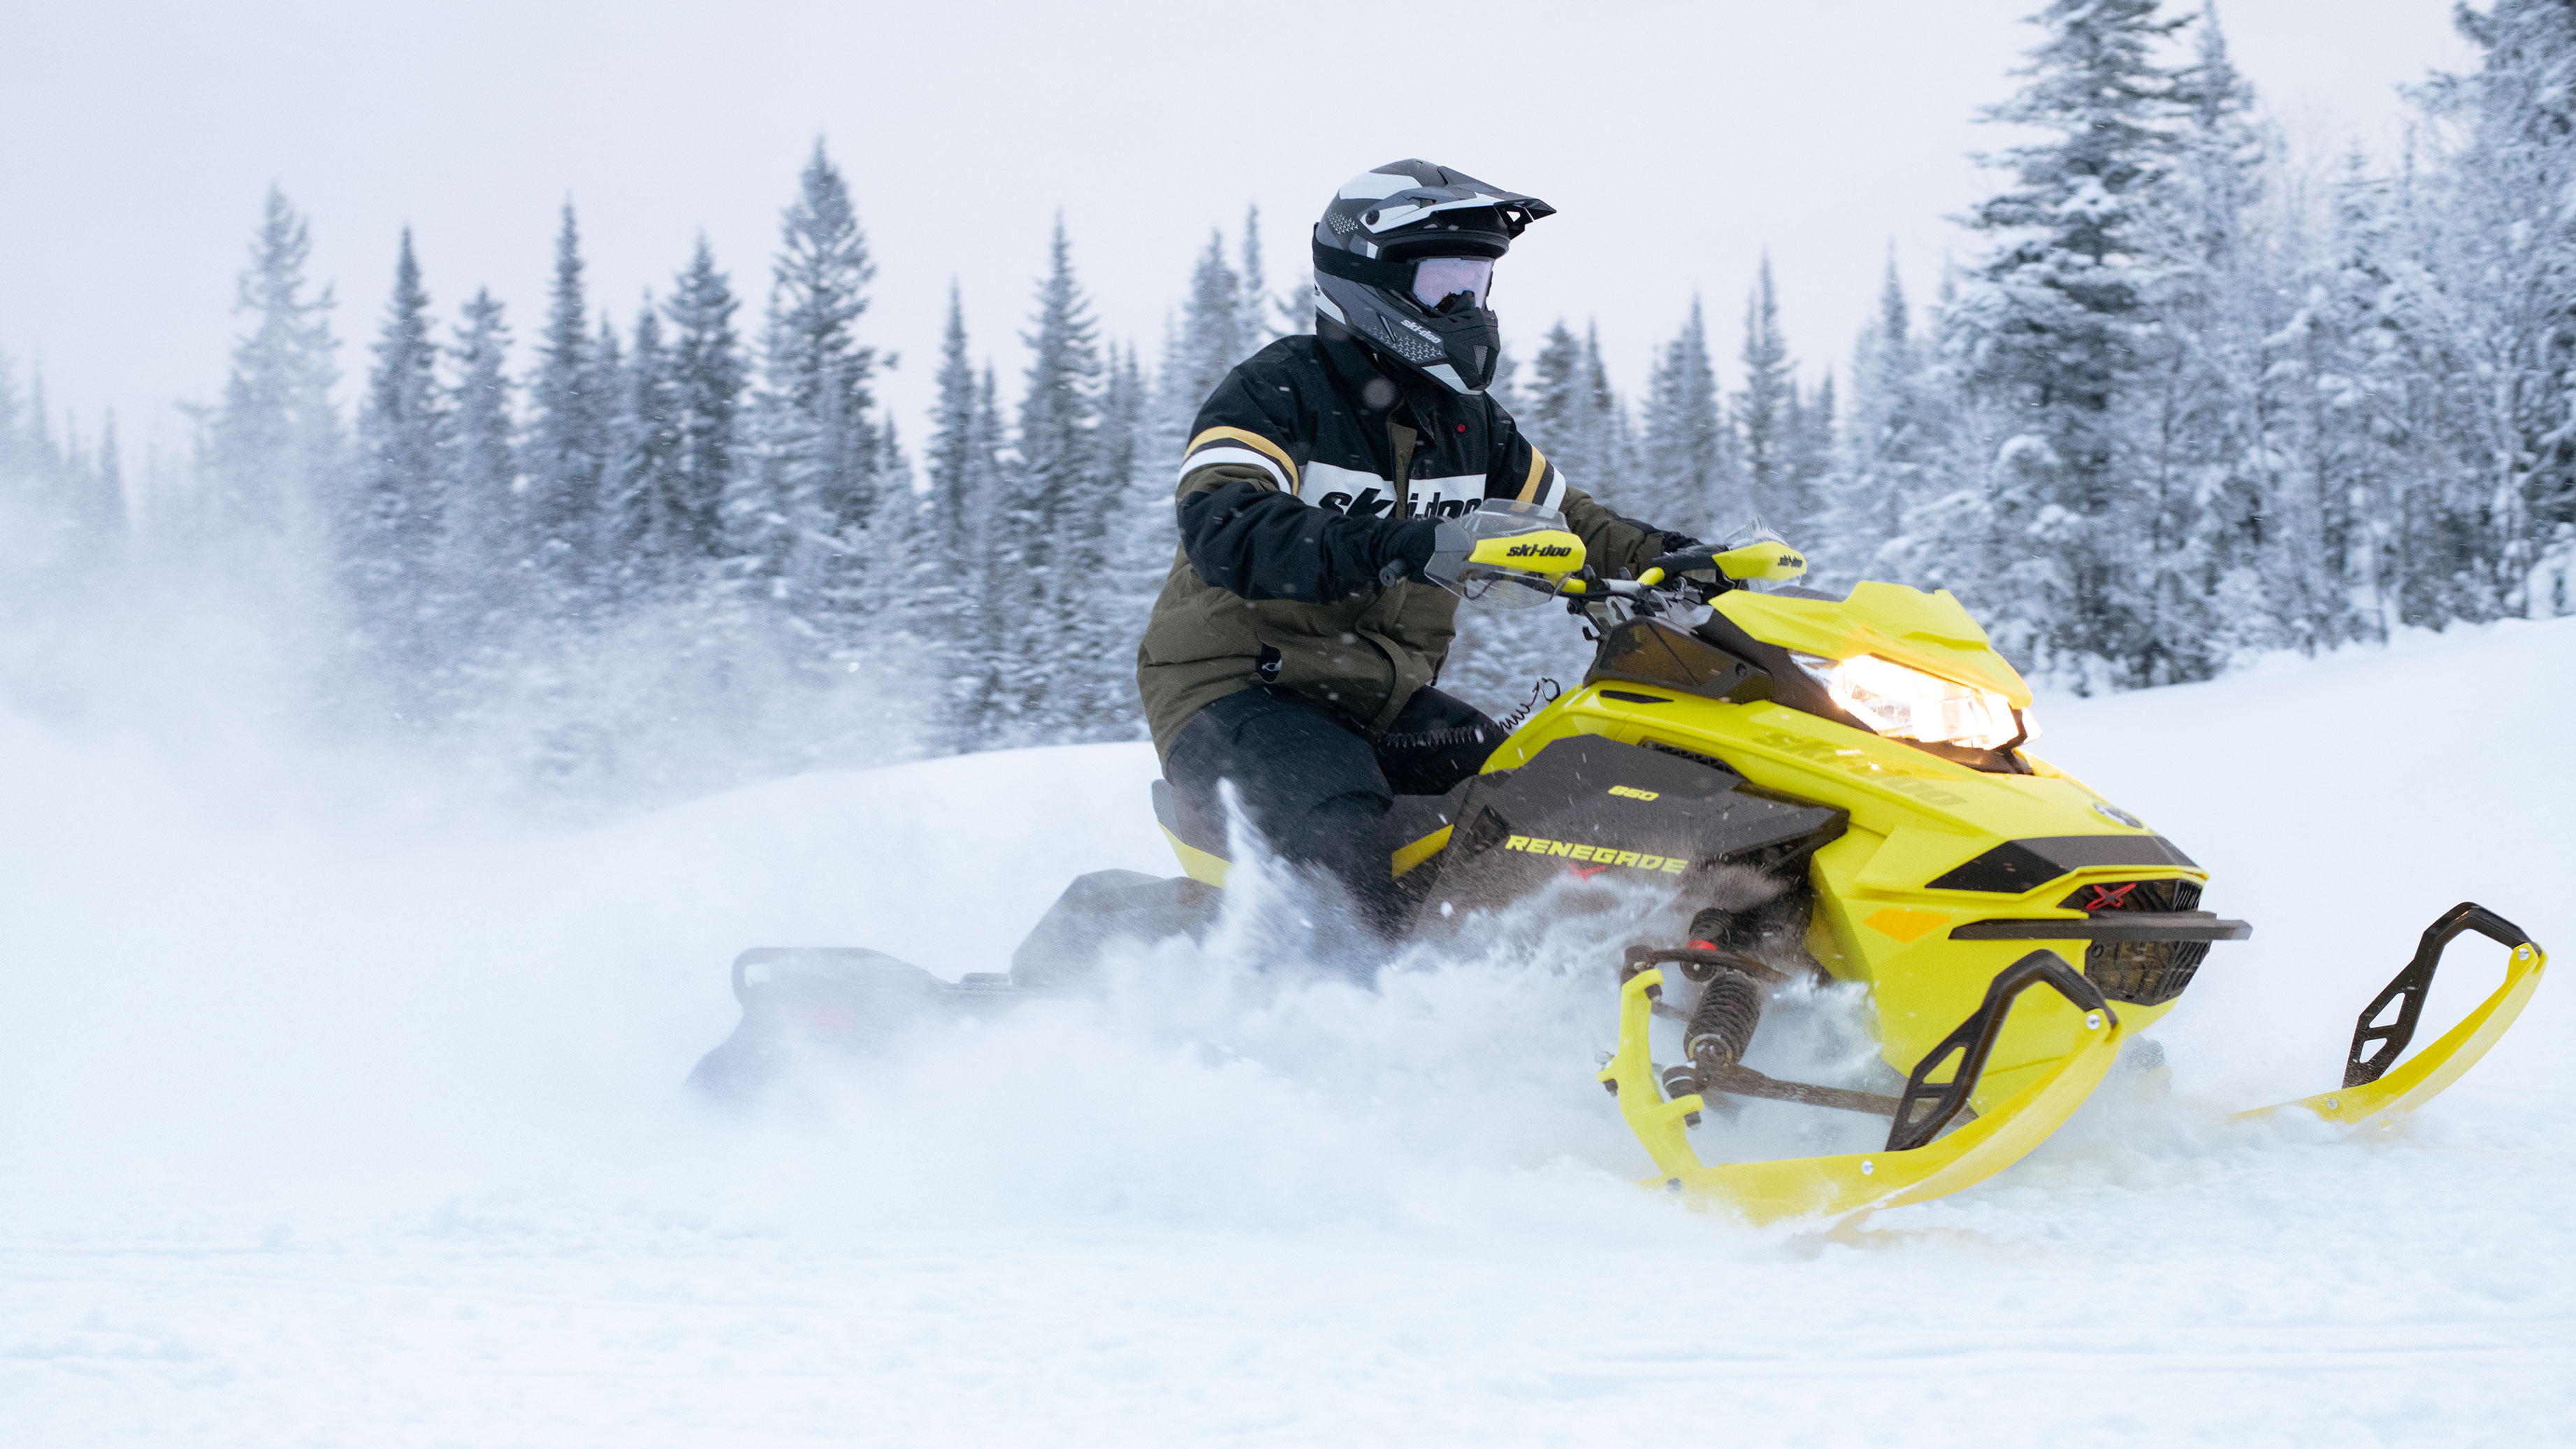 The new 2022 Ski-Doo Renegade